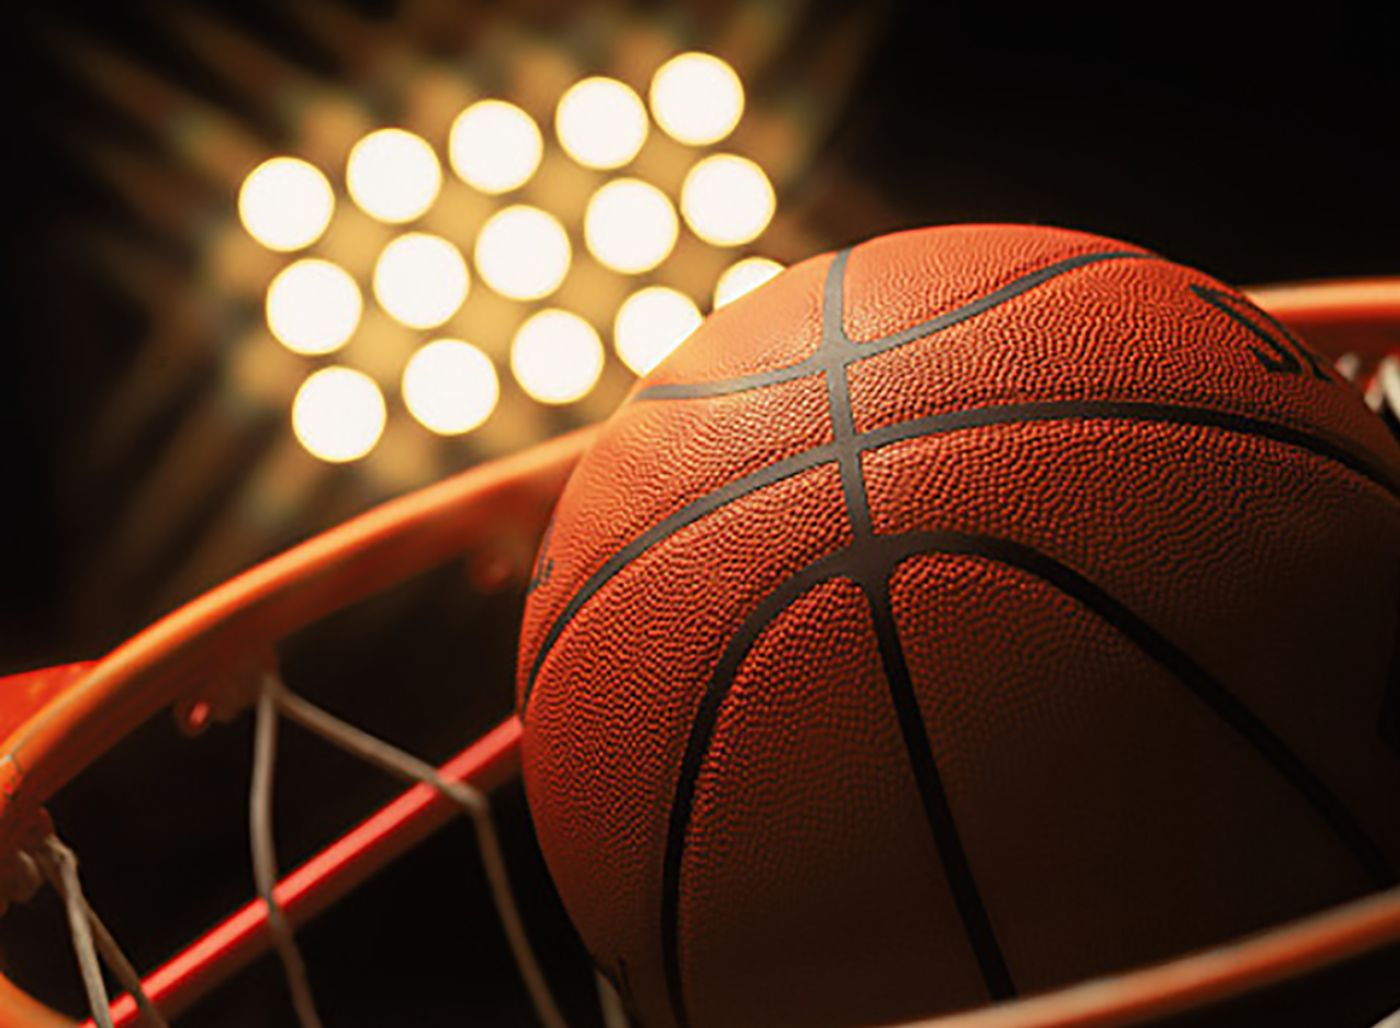 Southern Conference Announces Women's Basketball Schedule Changes